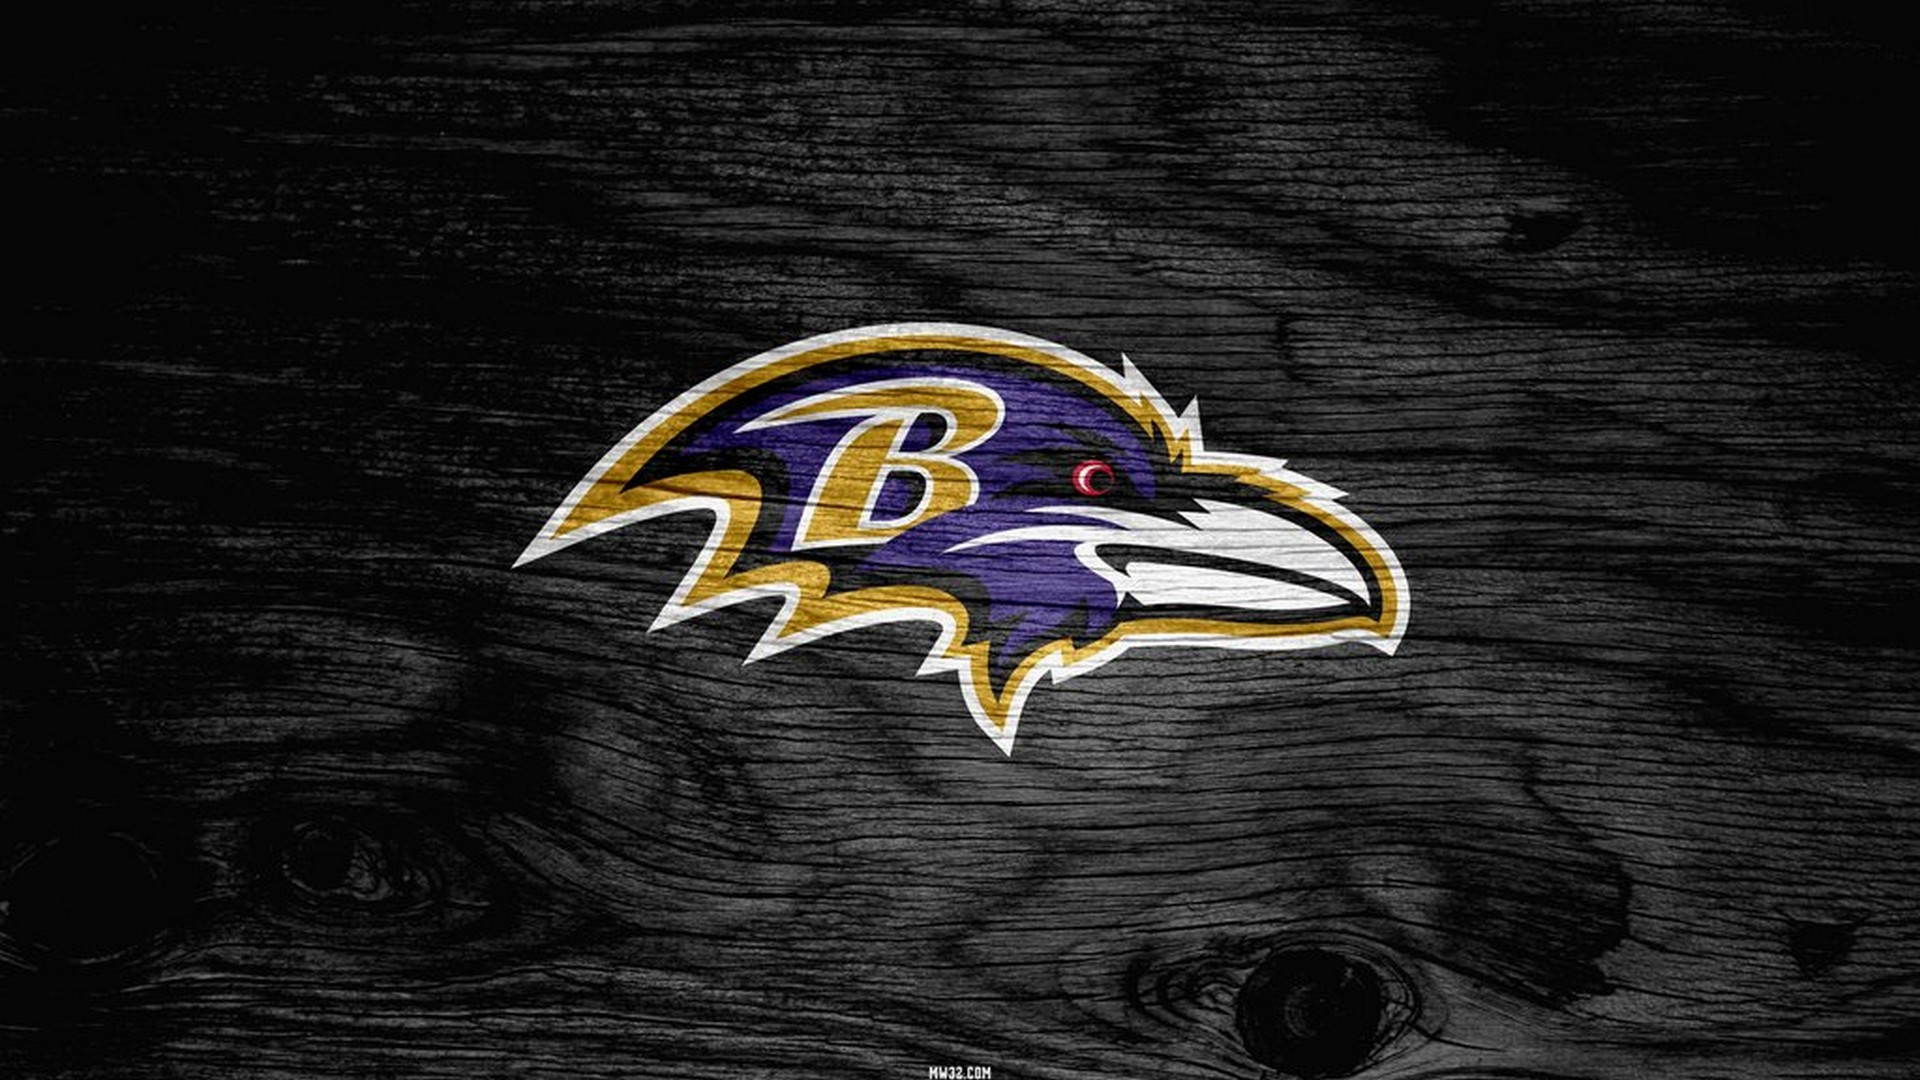 Wallpapers HD Baltimore Ravens 2020 NFL Football Wallpapers 1920x1080